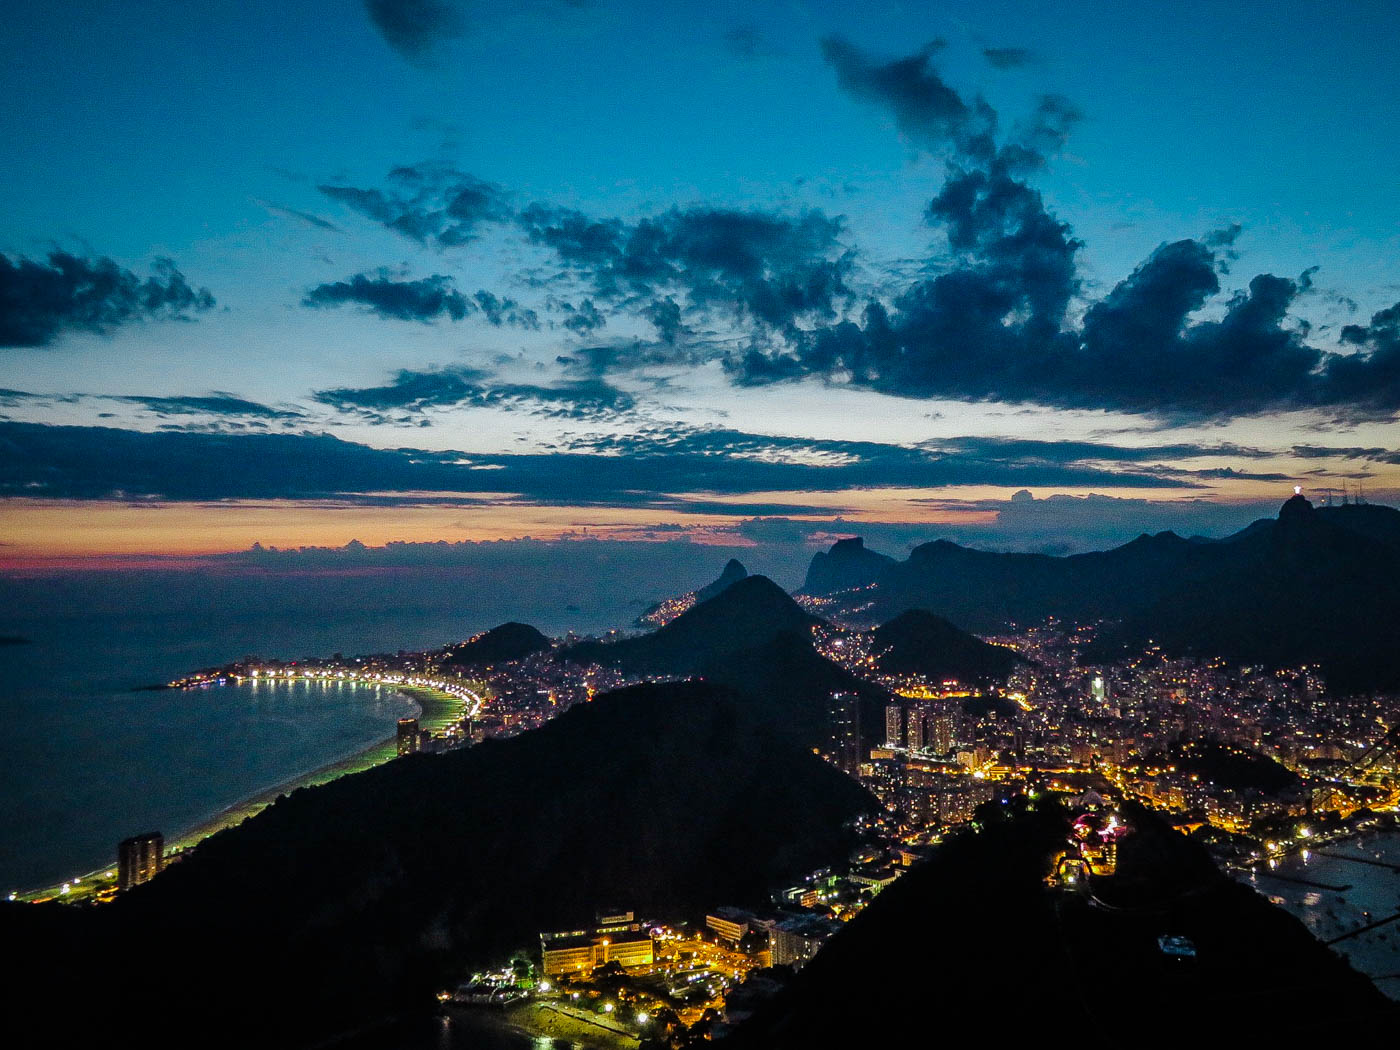 Pao D'Azucar I South America Travel Bucket List. 90 Awesome Things to do in South America When Backpacking and Travelling #southamerica #bucketlist #traveldestinations